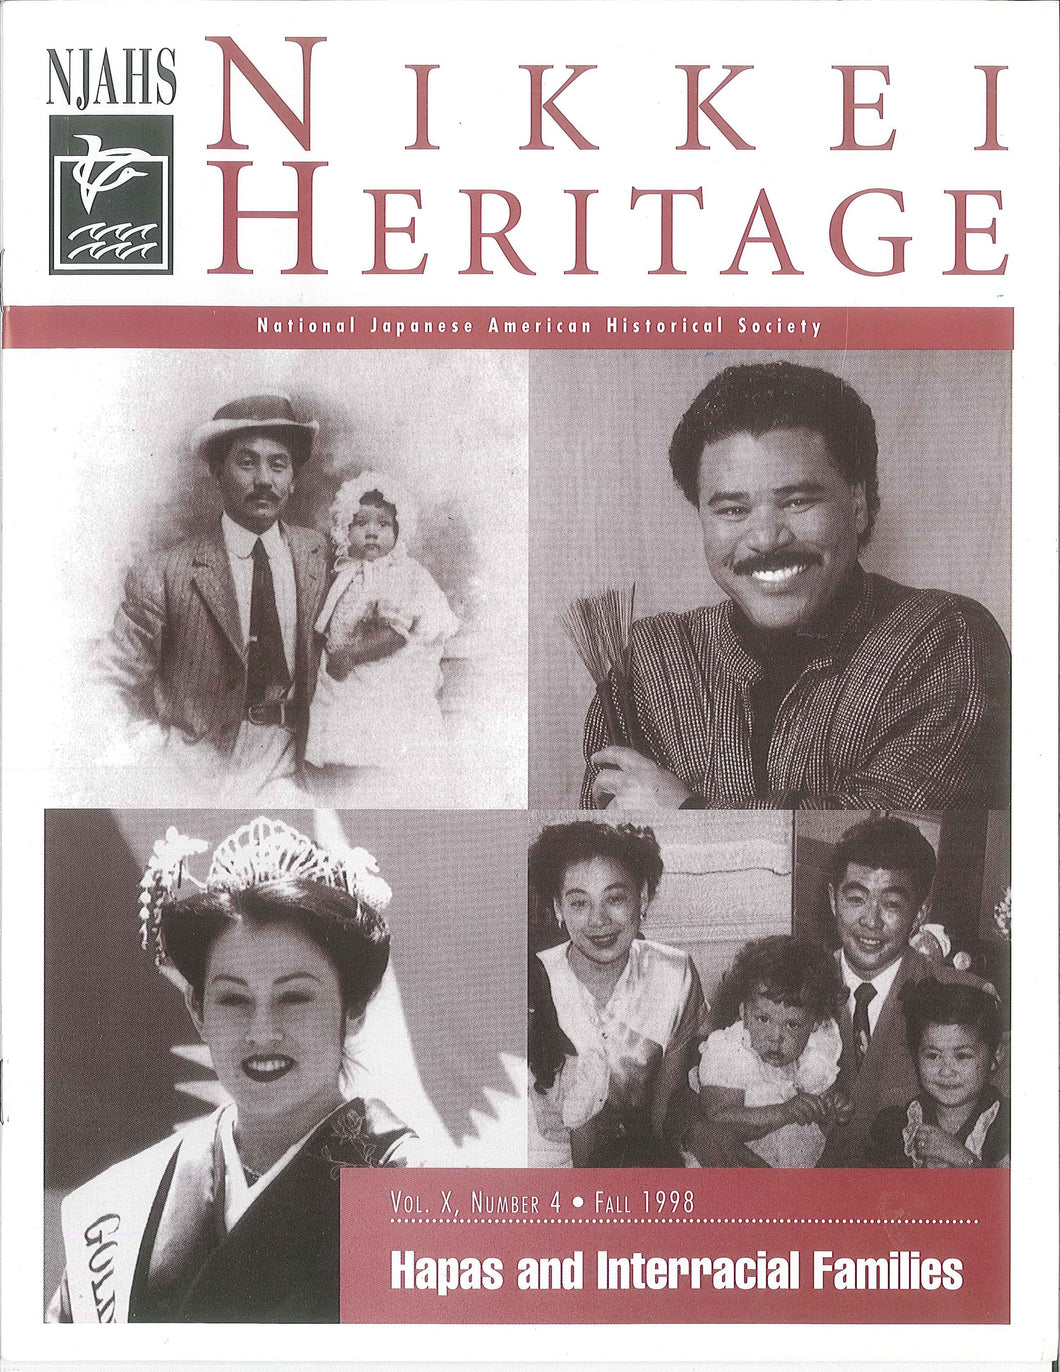 Nikkei Heritage - Hapas and Interracial Families